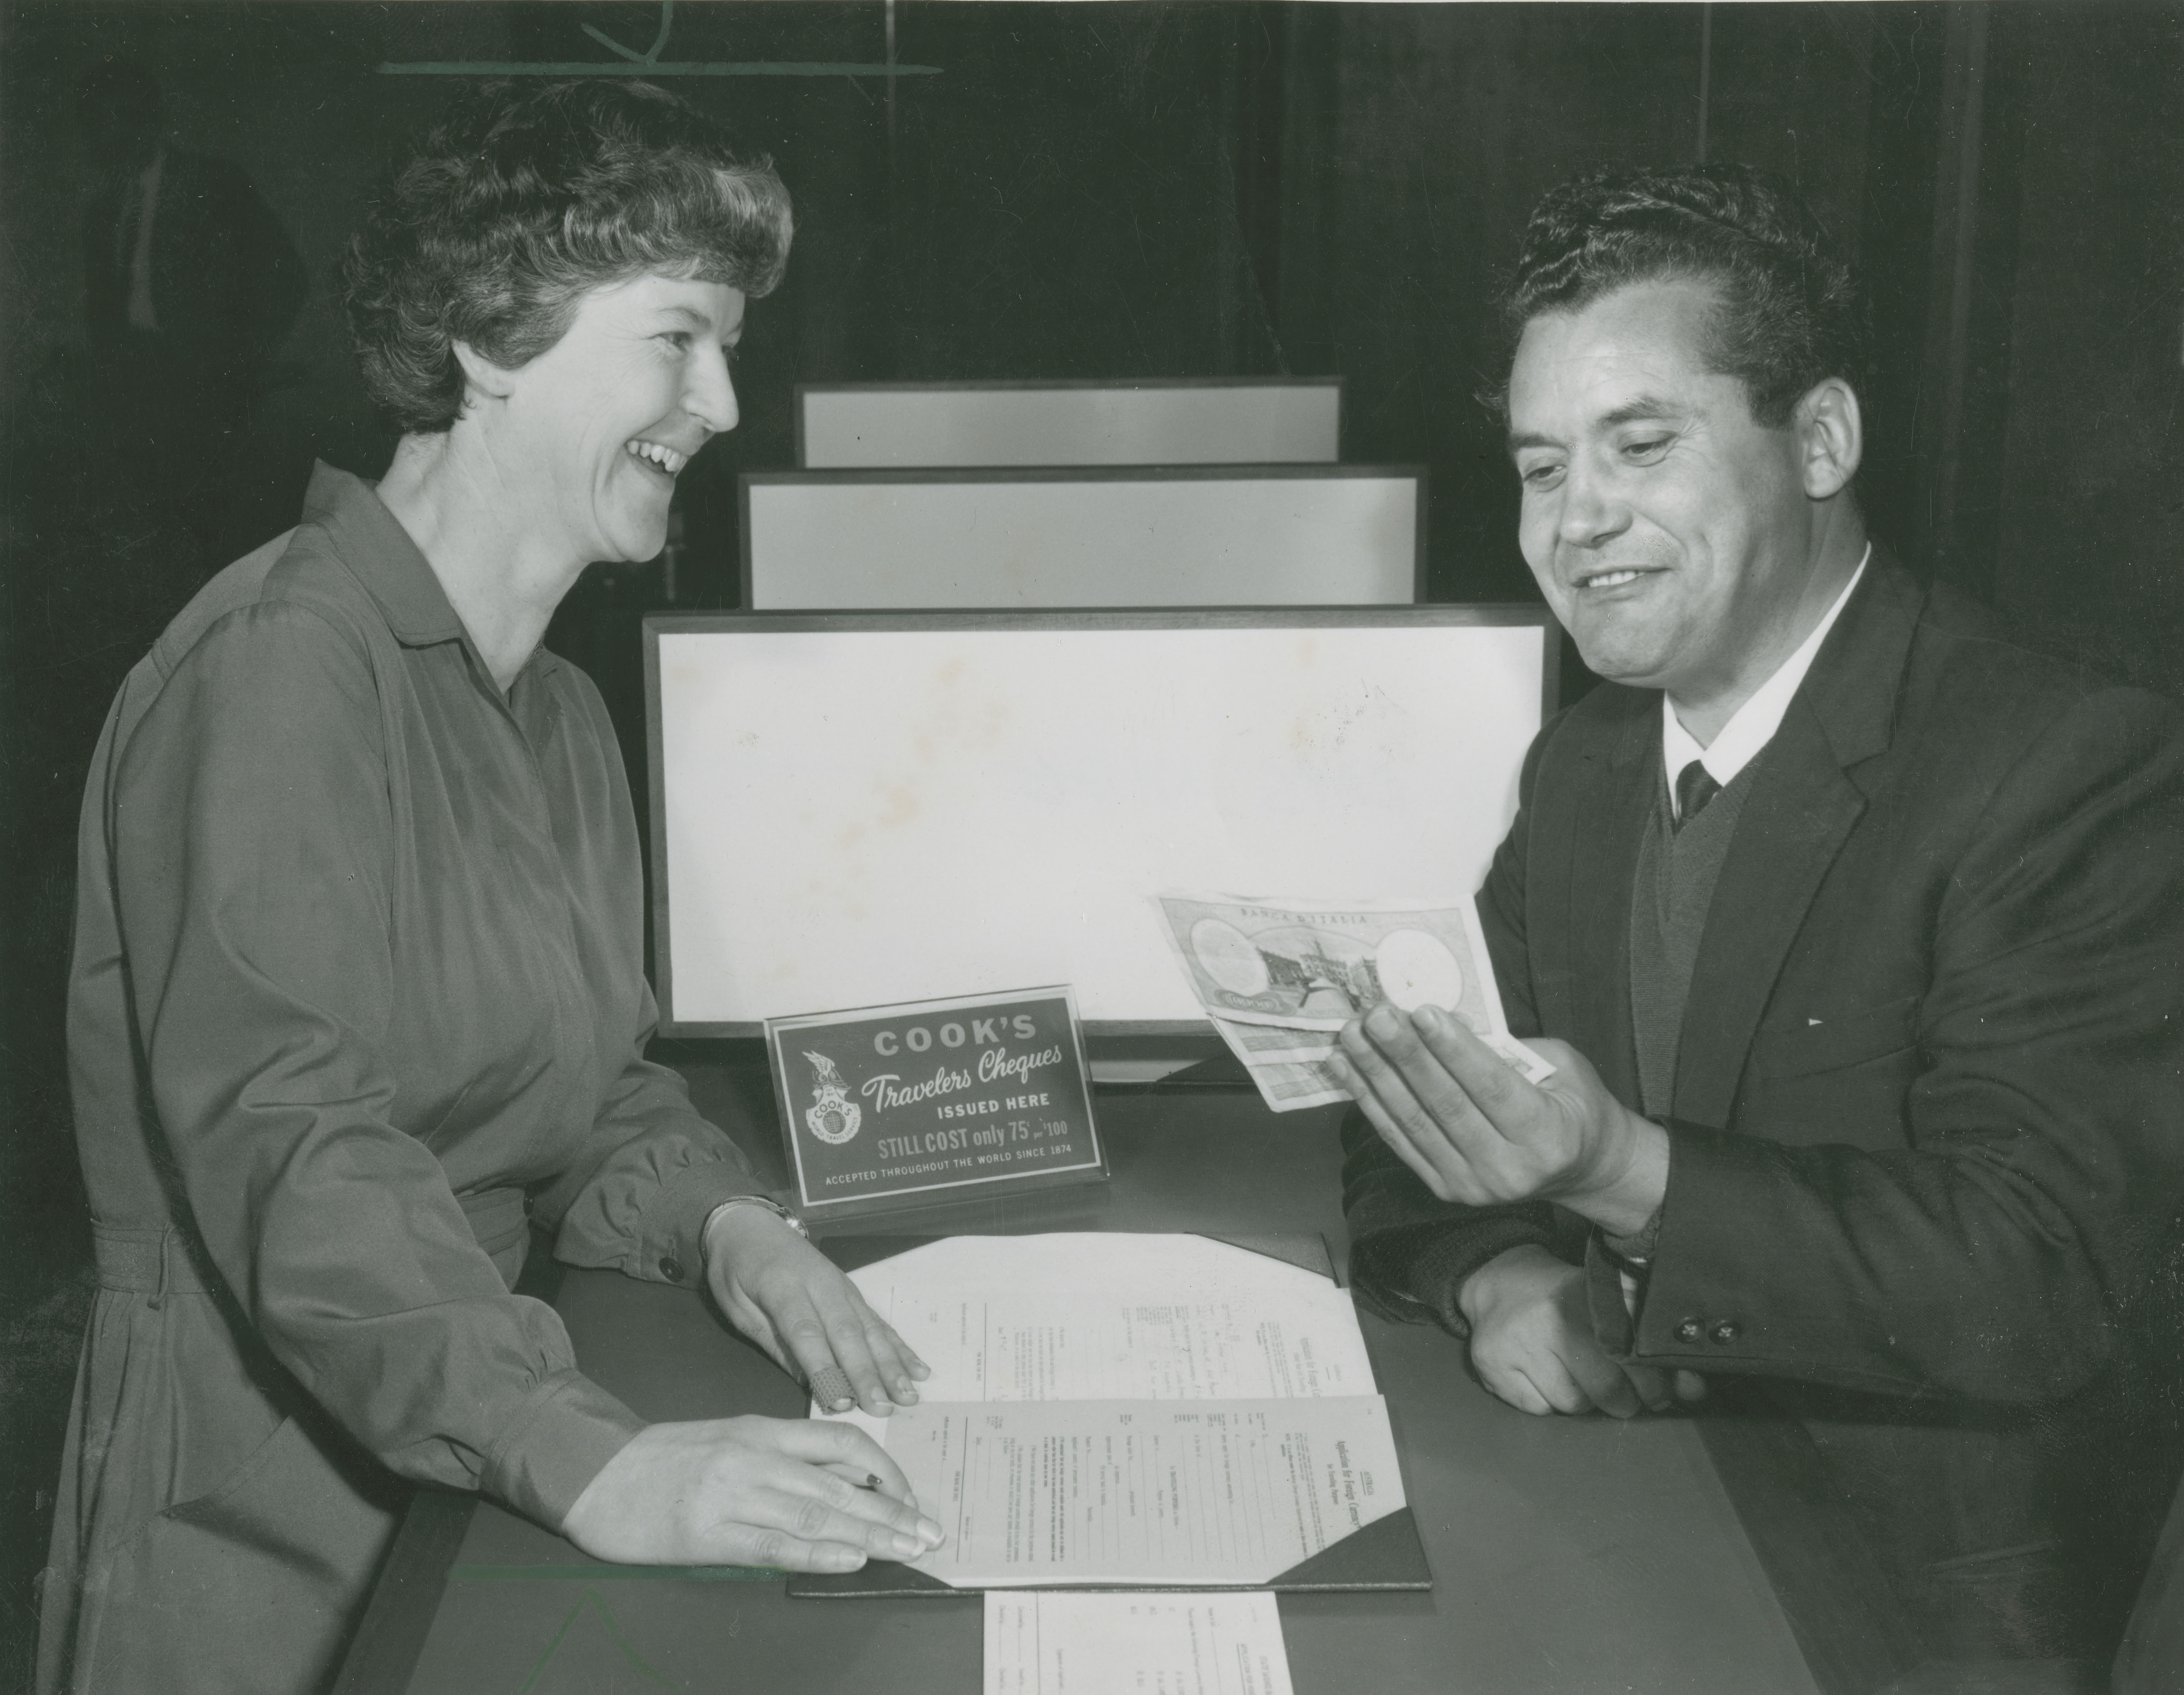 Miss Mac' Stella McDonald of the Overseas Department with a customer.